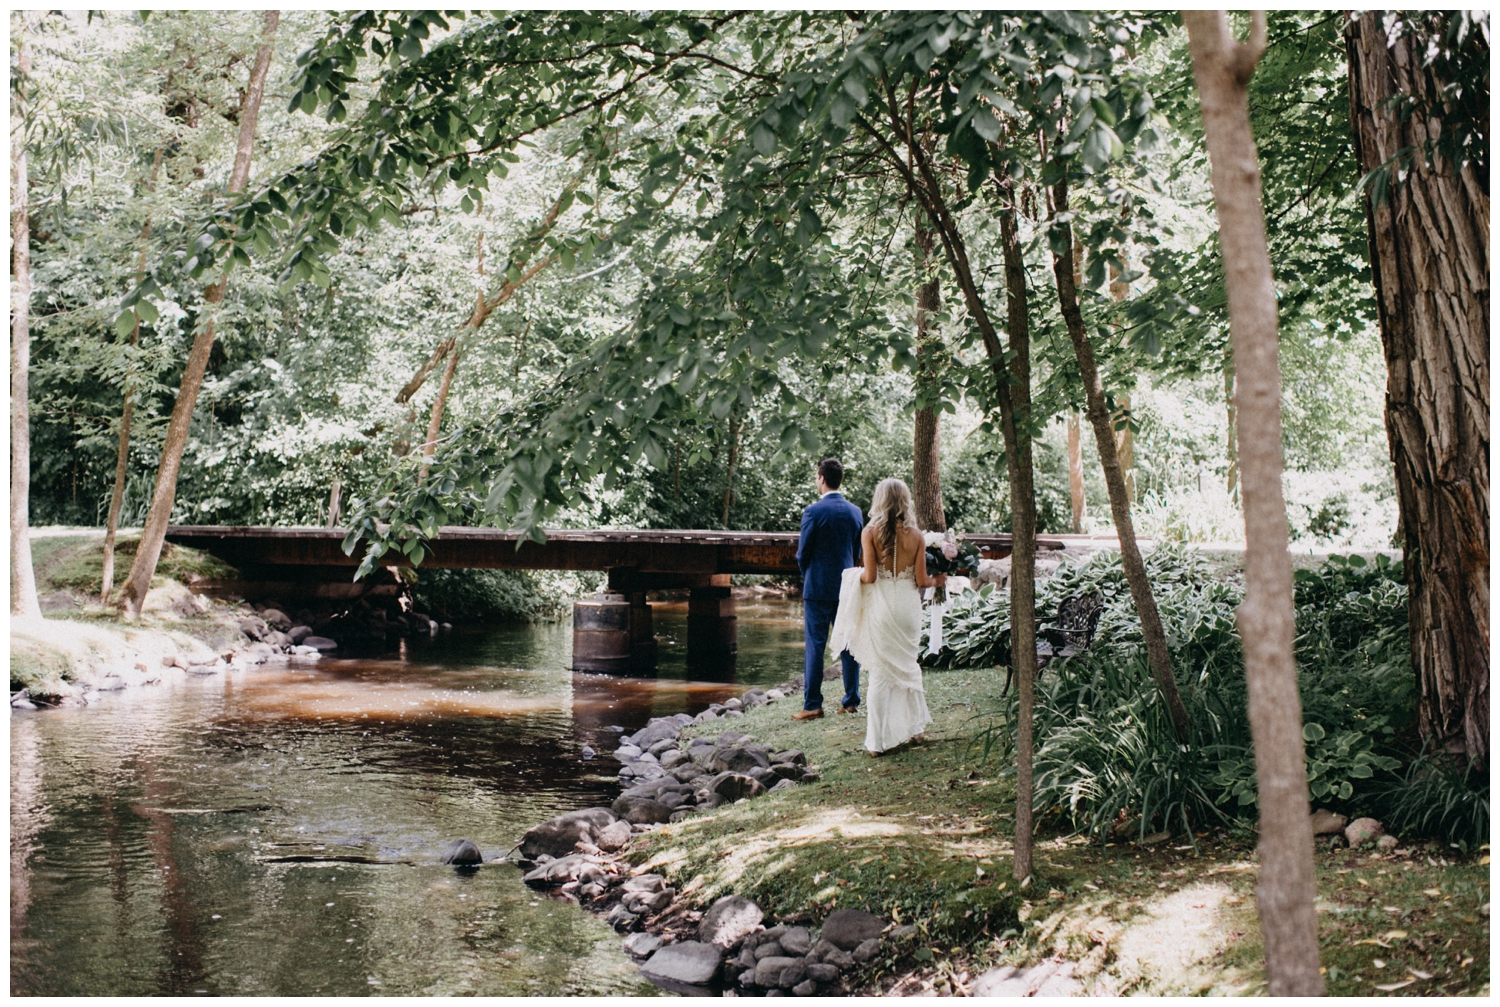 First look by the creek at barn wedding in Rush City, MN